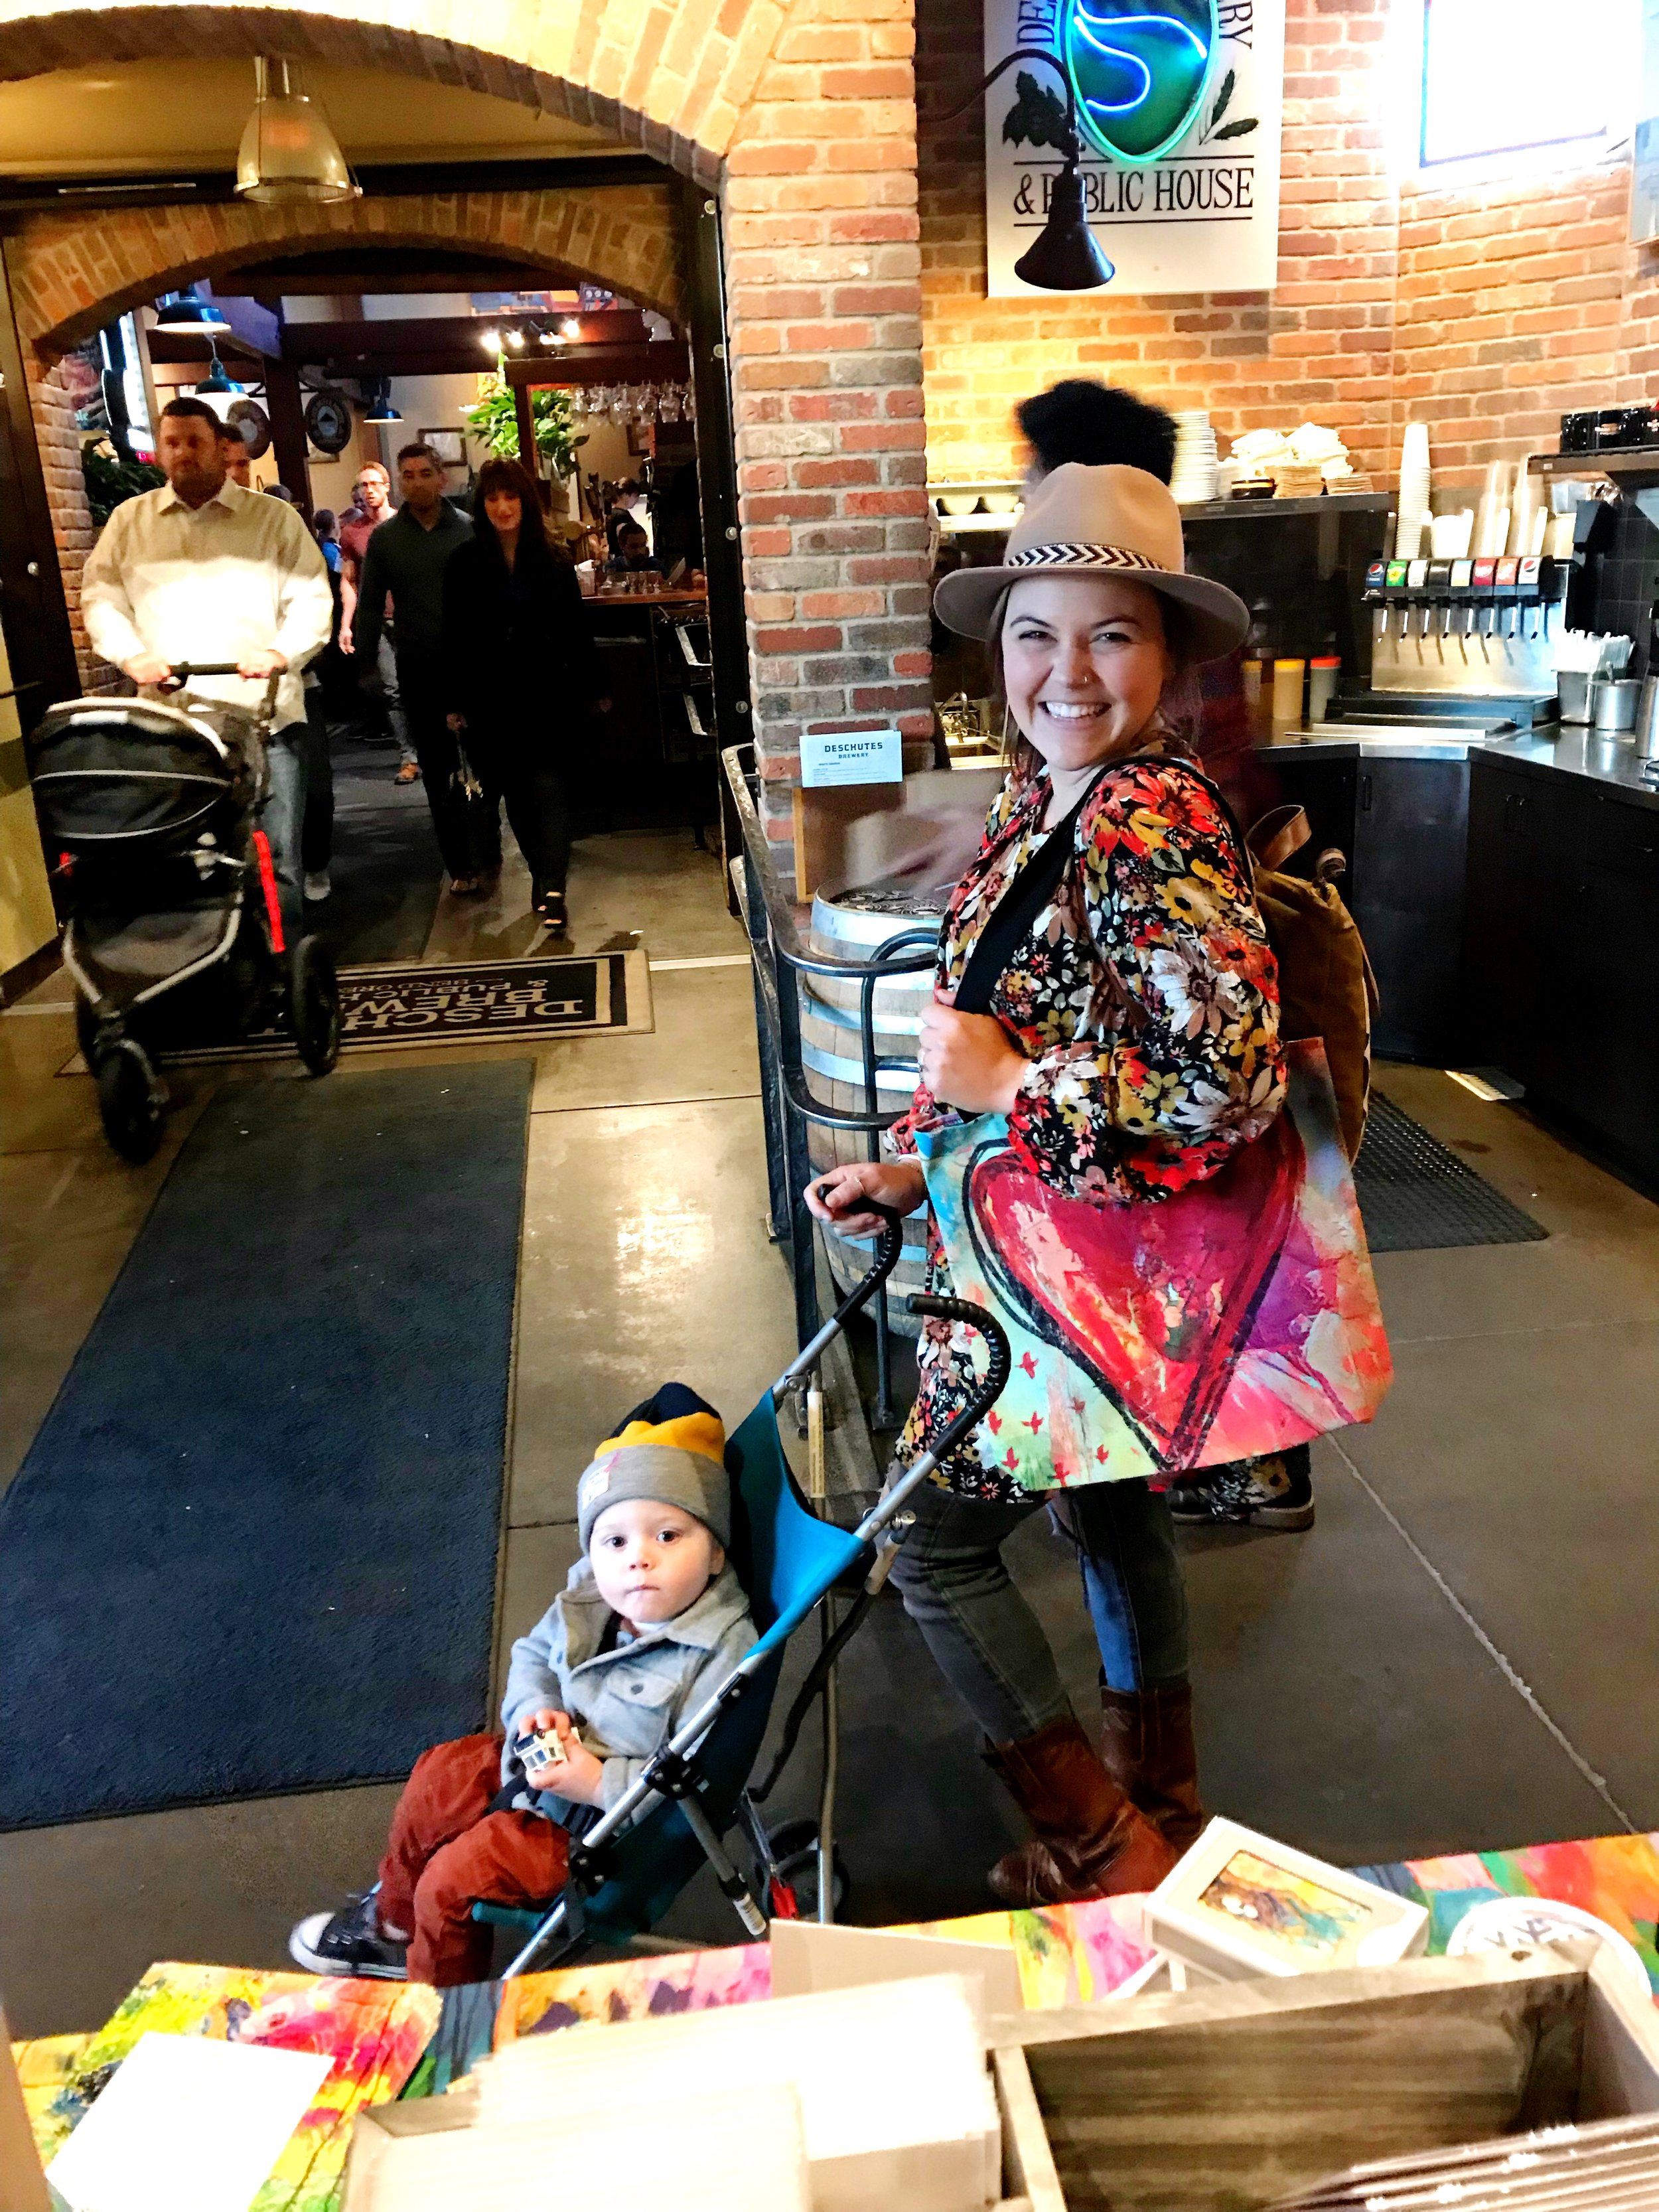 Adorable happy customer with one of my NEW LOVE Wins Tote bags!